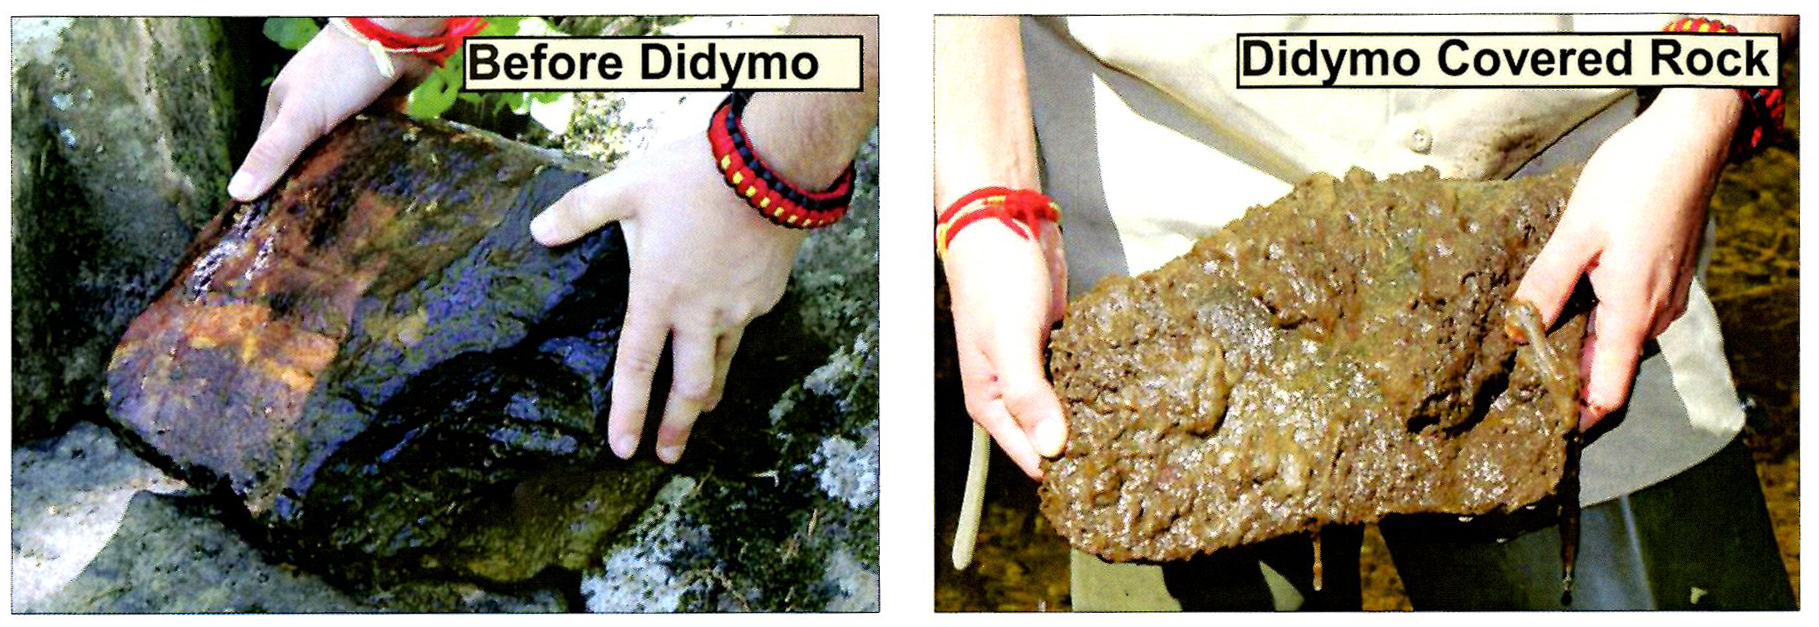 Rock before and after didymo